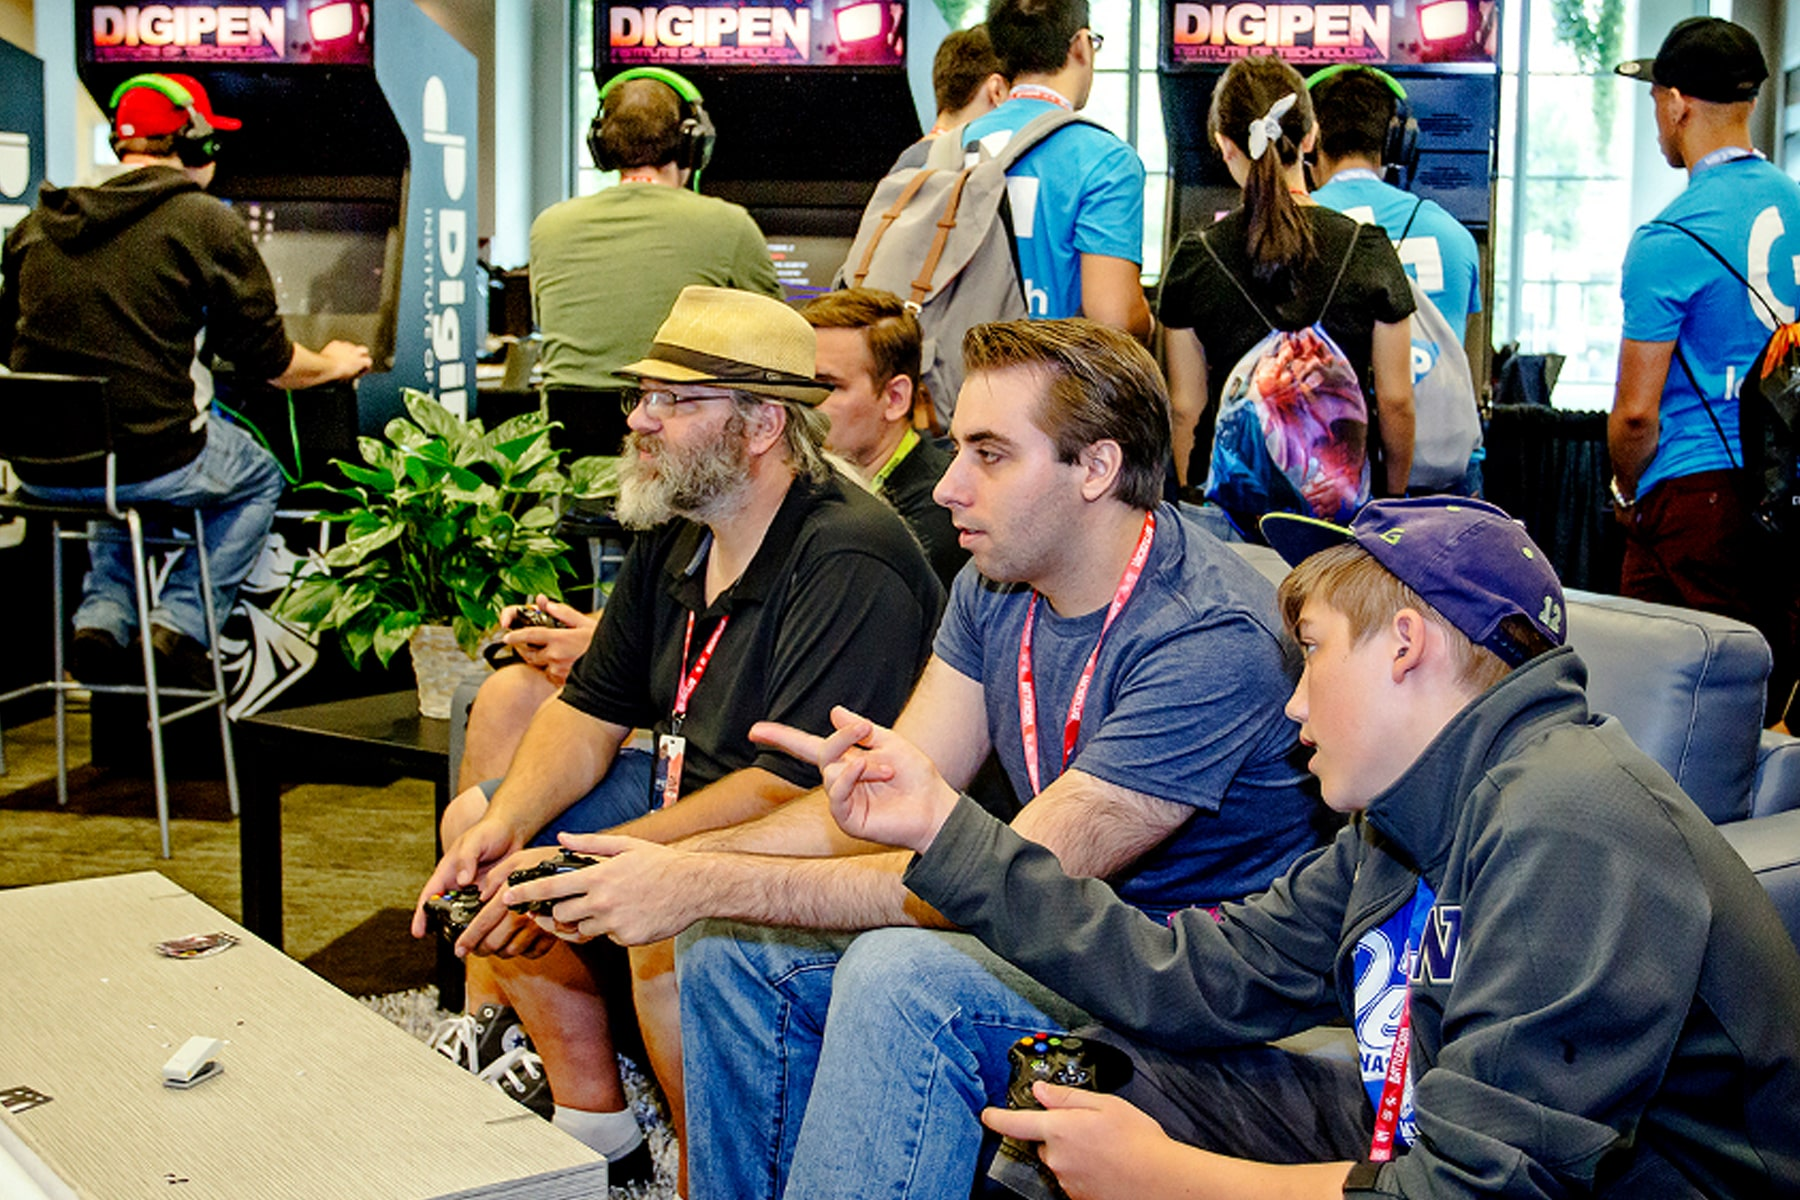 PAX attendees play games on a couch in the DigiPen arcade booth